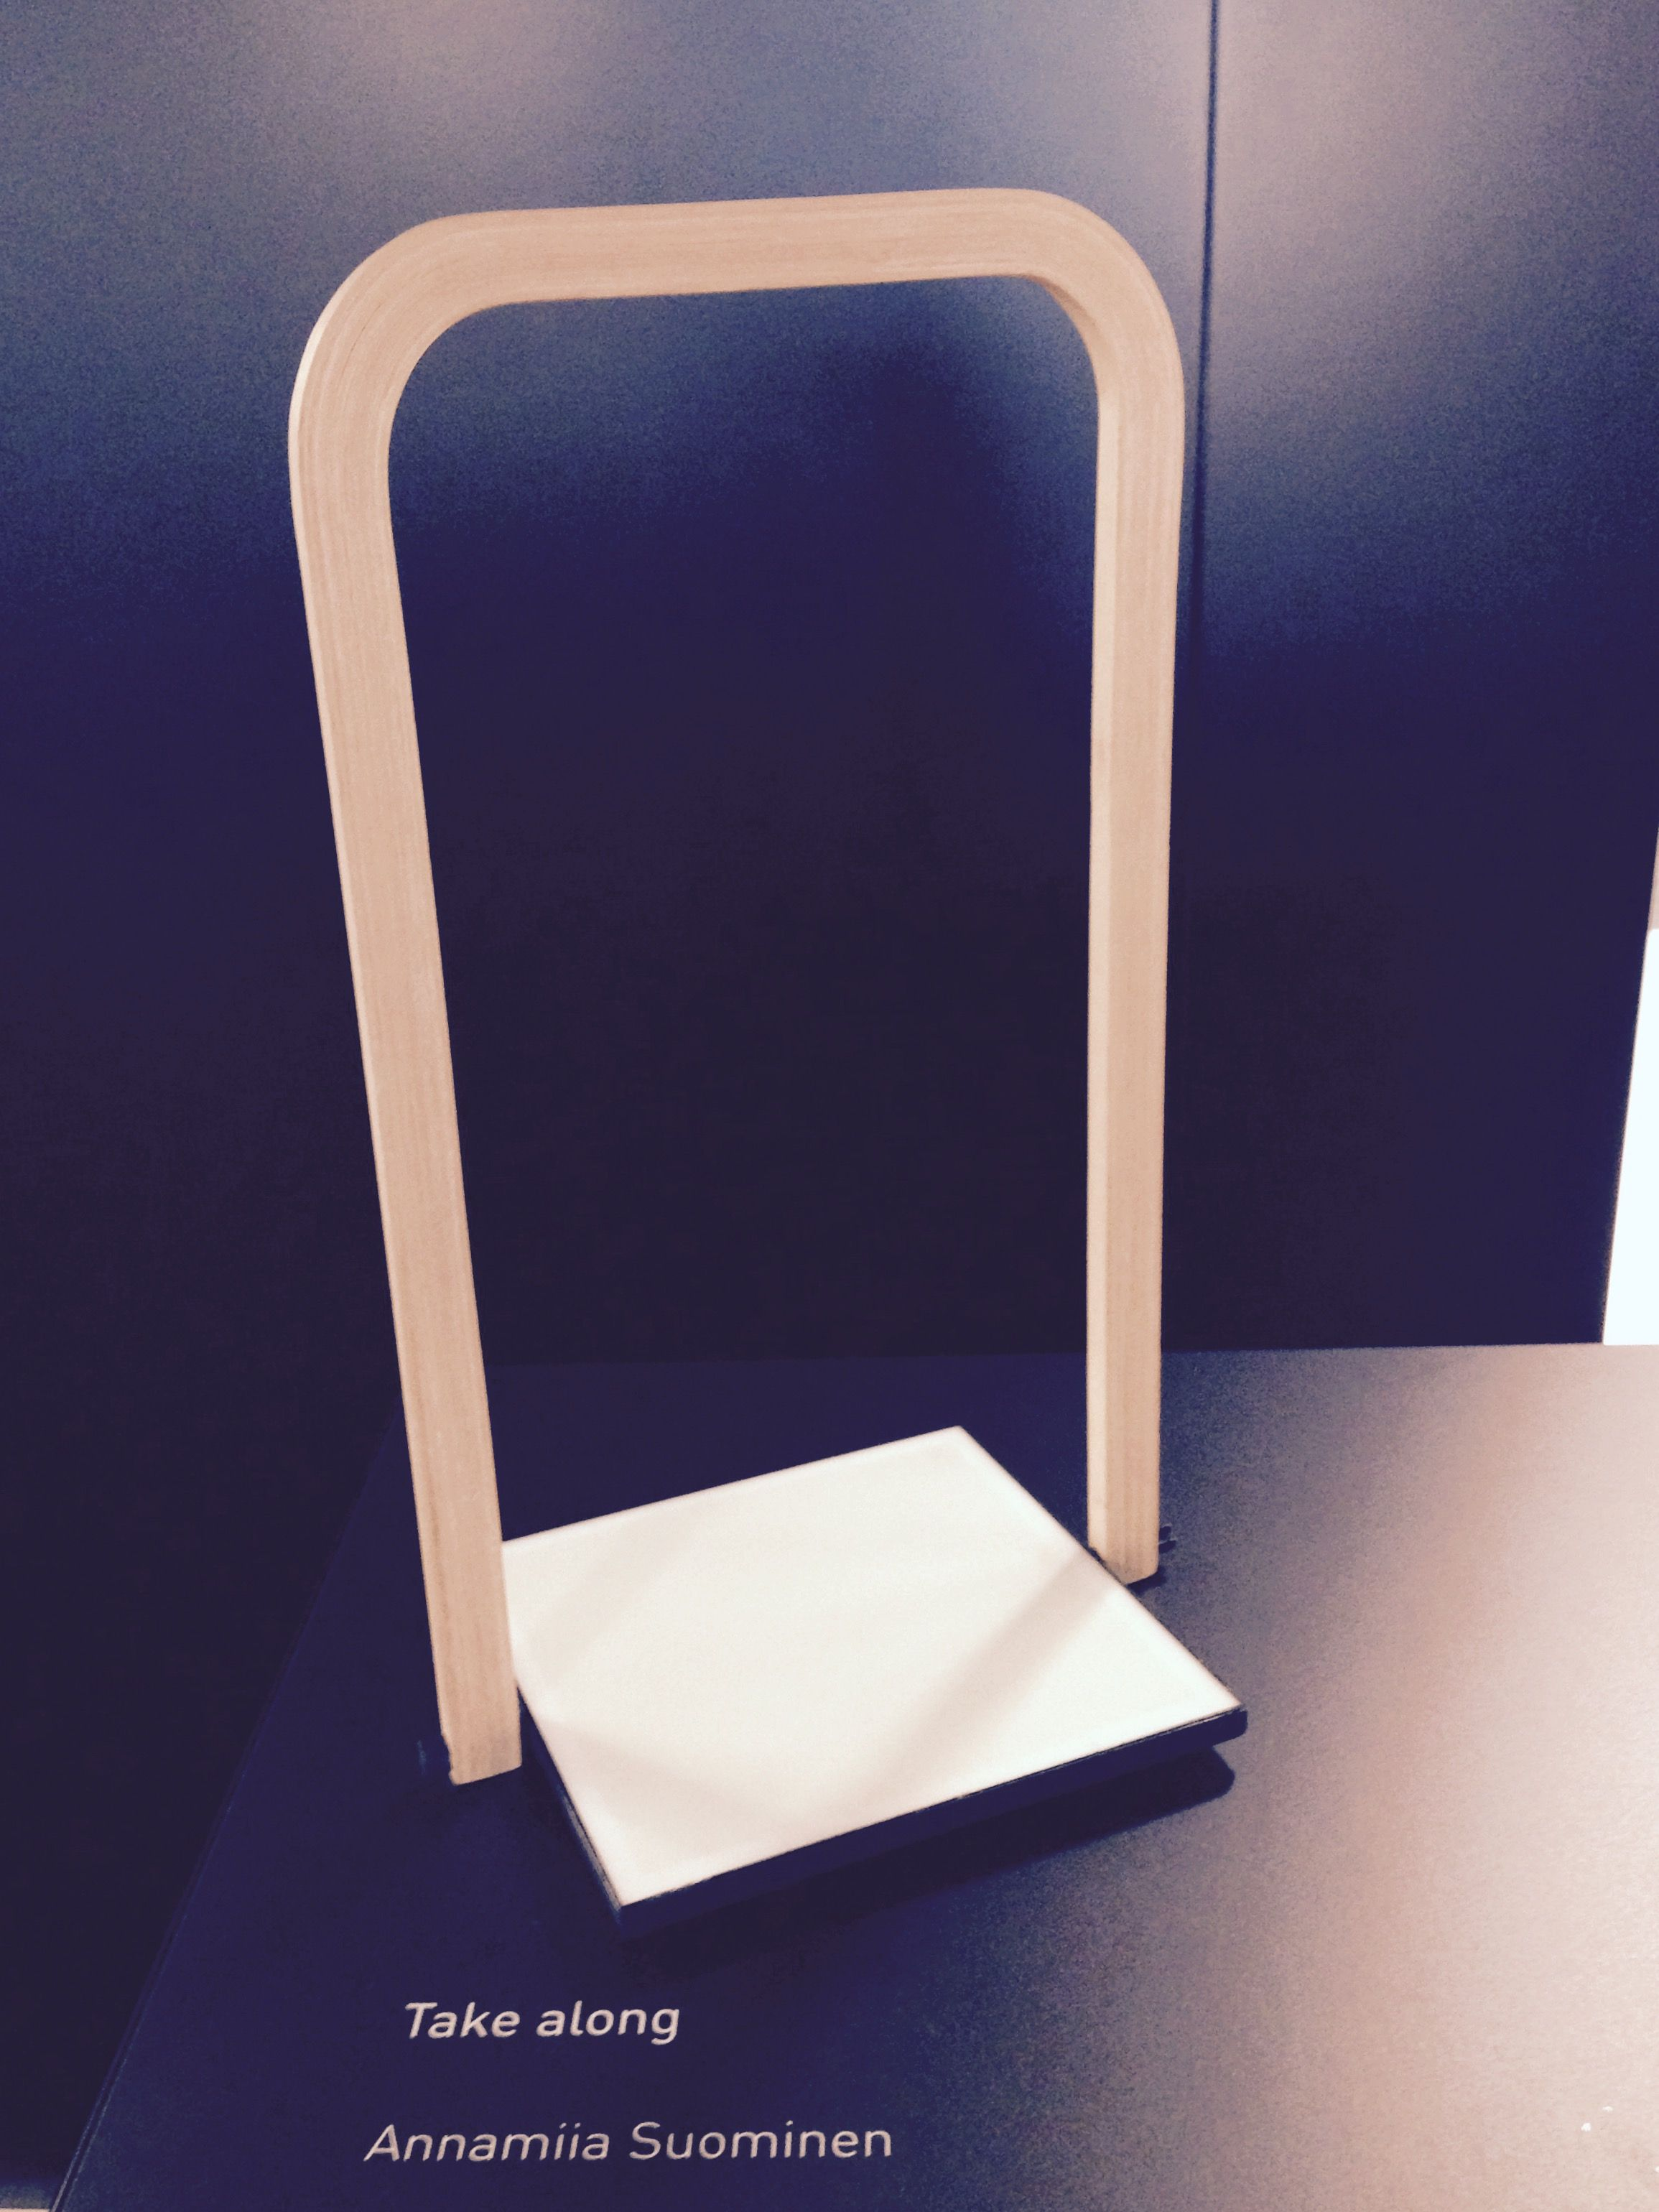 Take Along Oled Lamp By Annamiia Suominen At Habitare 2015 Charging Circuit Repaired And Oled Installed At Aalto Fablab